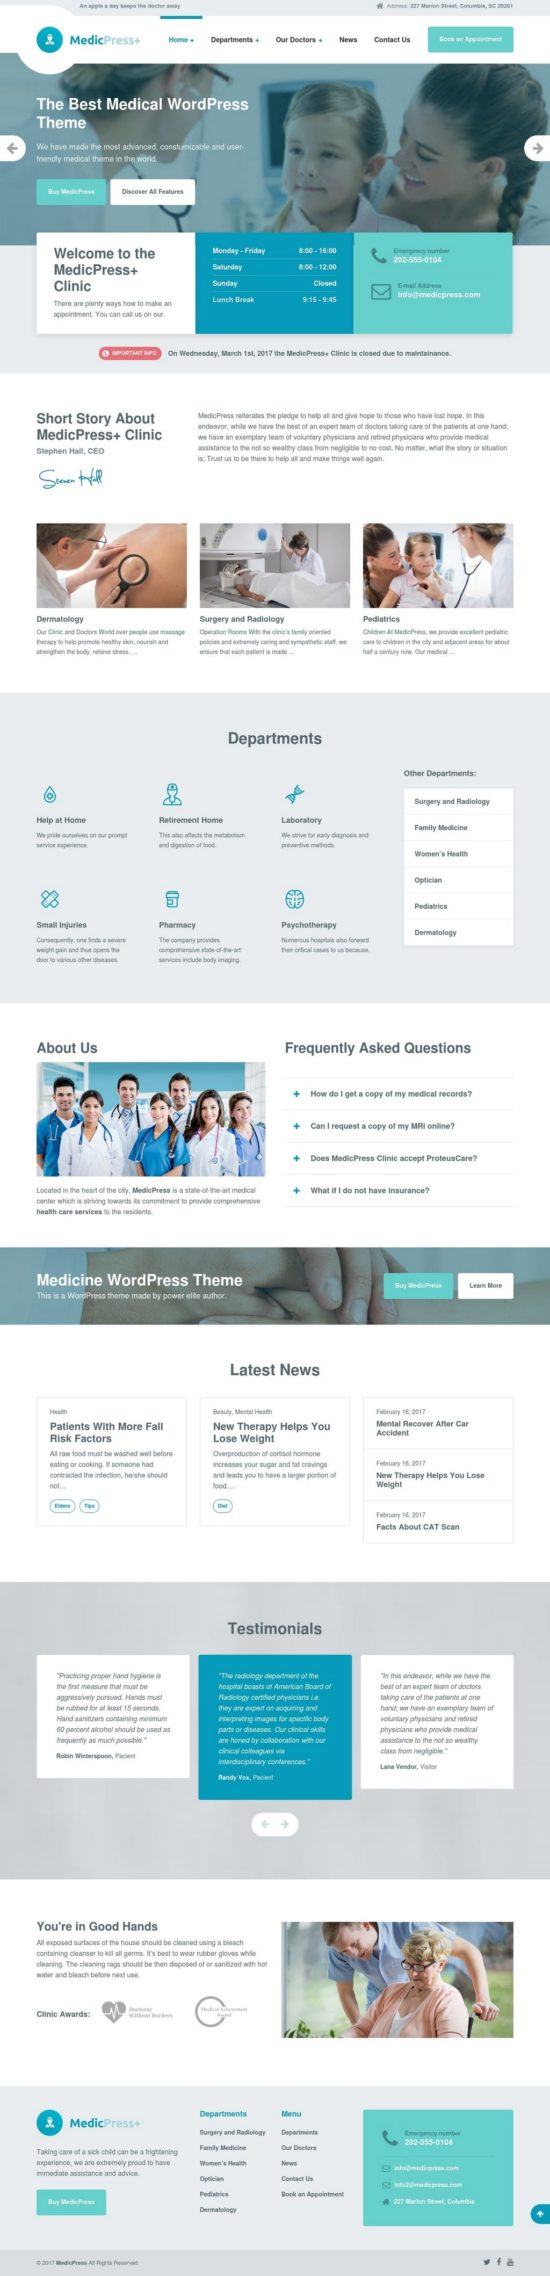 medicpress proteusthemes wordpress theme 01 550x2276 - MedicPress WordPress Theme